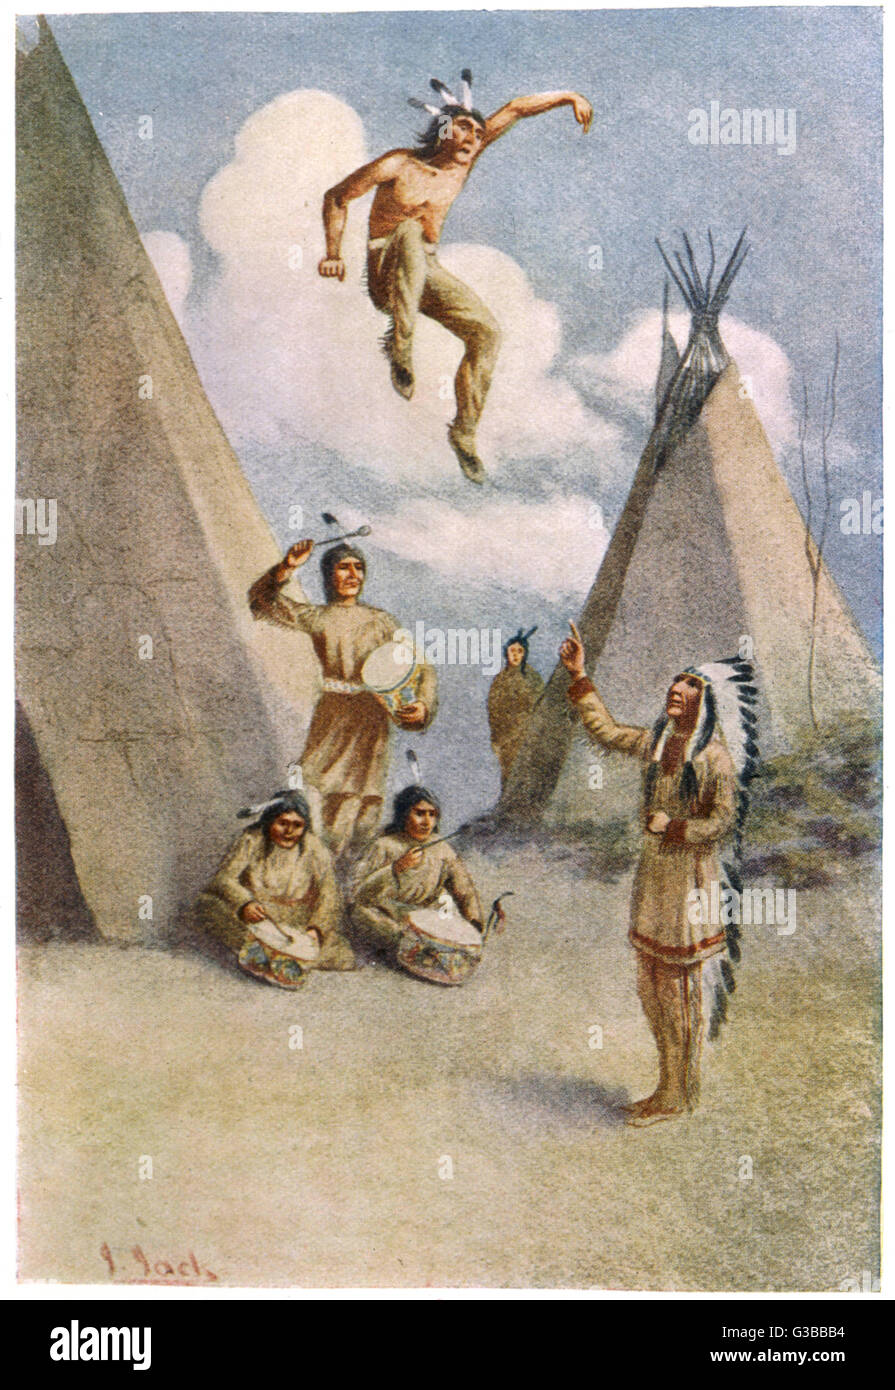 Sioux myth of Ictinike, son  of the Sun god, he was  compelled by magic to leap in  the air to a drum beat      - Stock Image